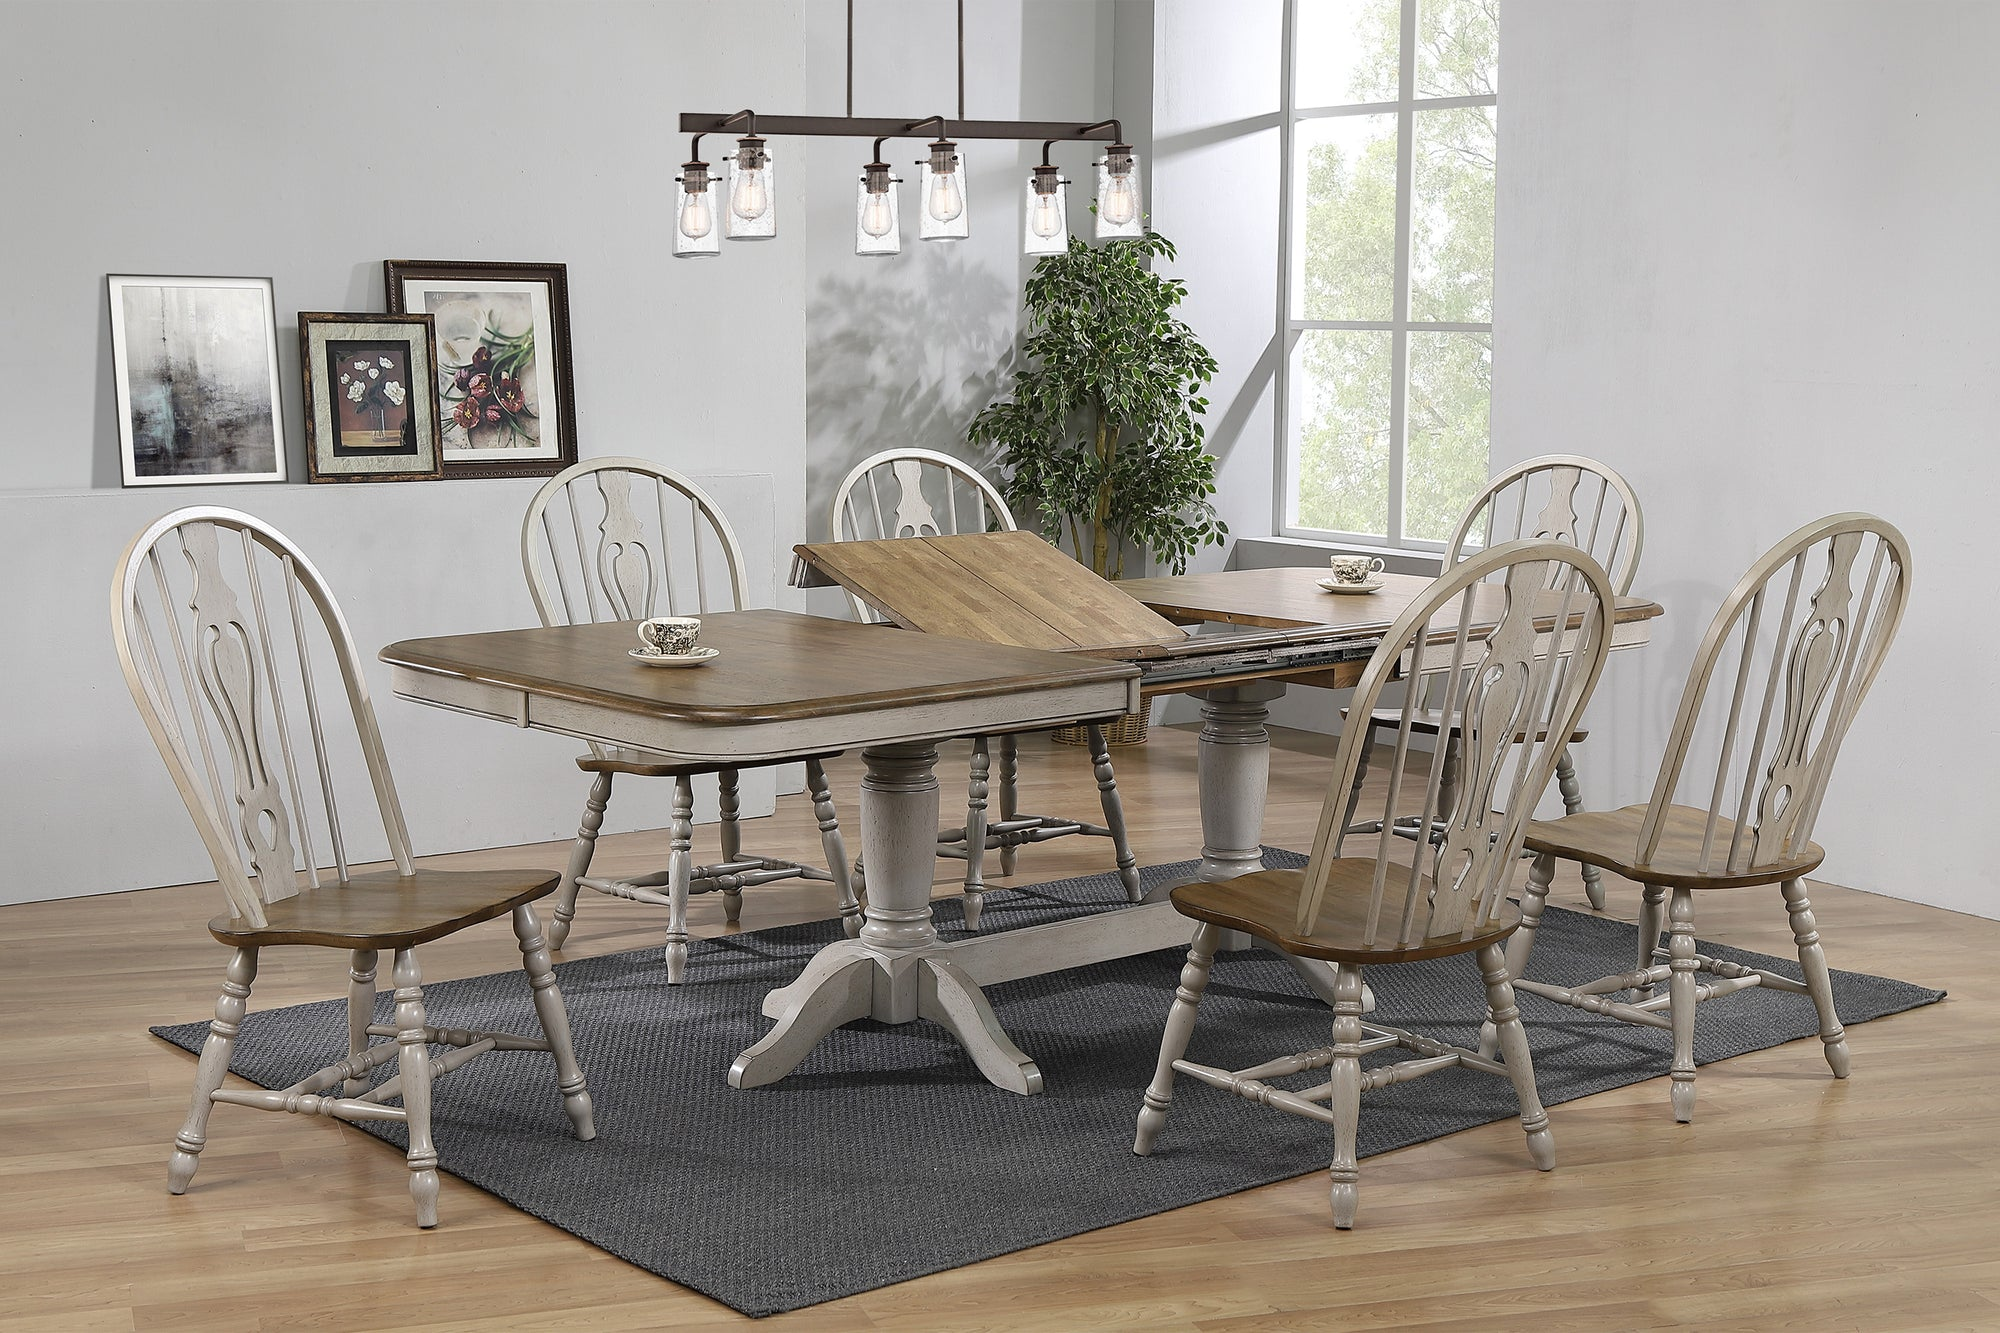 My Furniture Place Quality Furniture At Distributor Prices